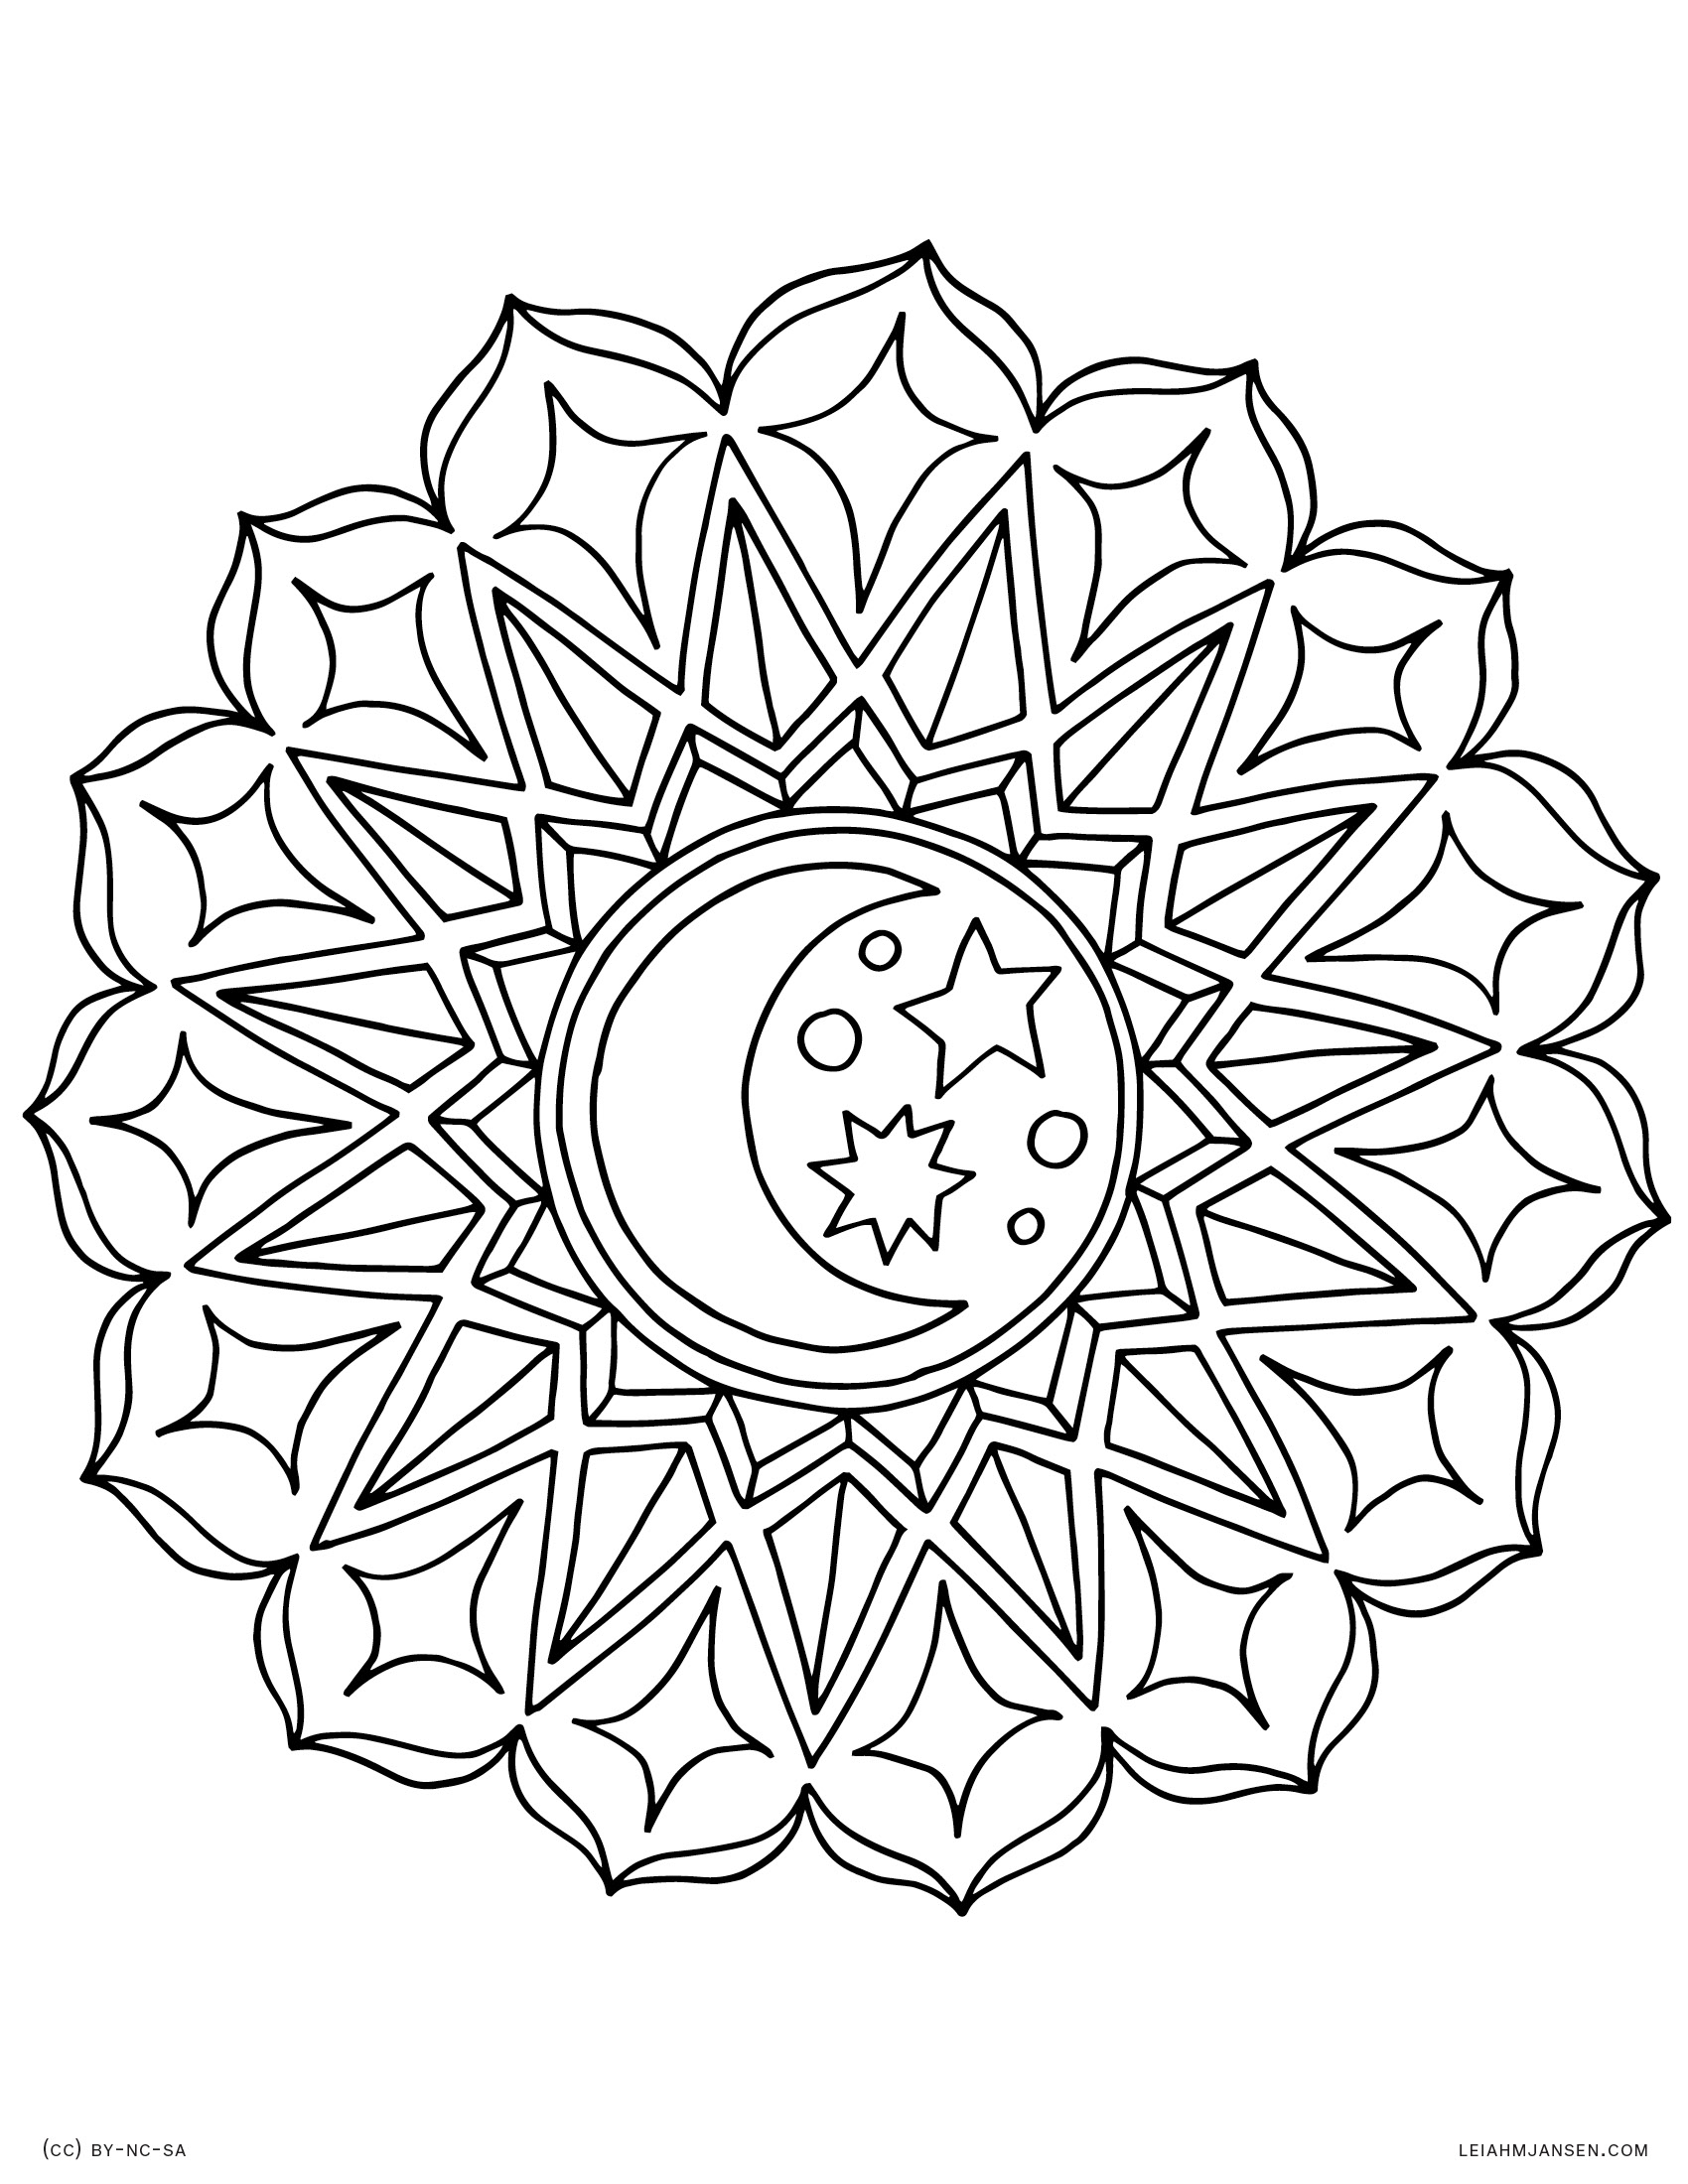 free mandala coloring pages for adults free clipart of a black and white adult coloring page adults for pages mandala coloring free